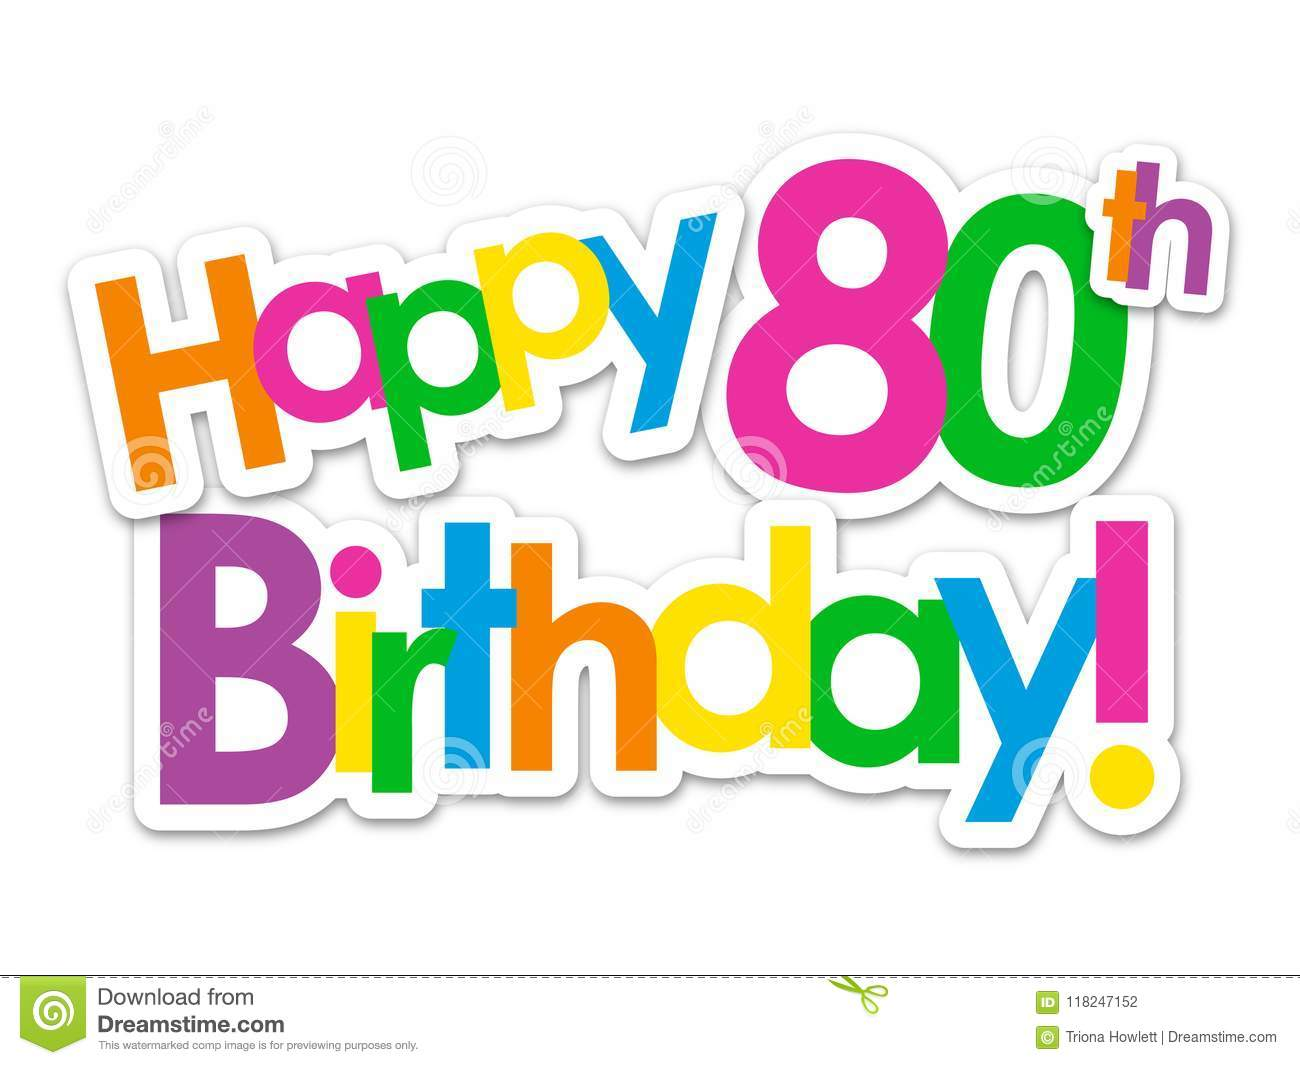 HAPPY 80th BIRTHDAY Bright And Colorful Overlapping Stickers Vector